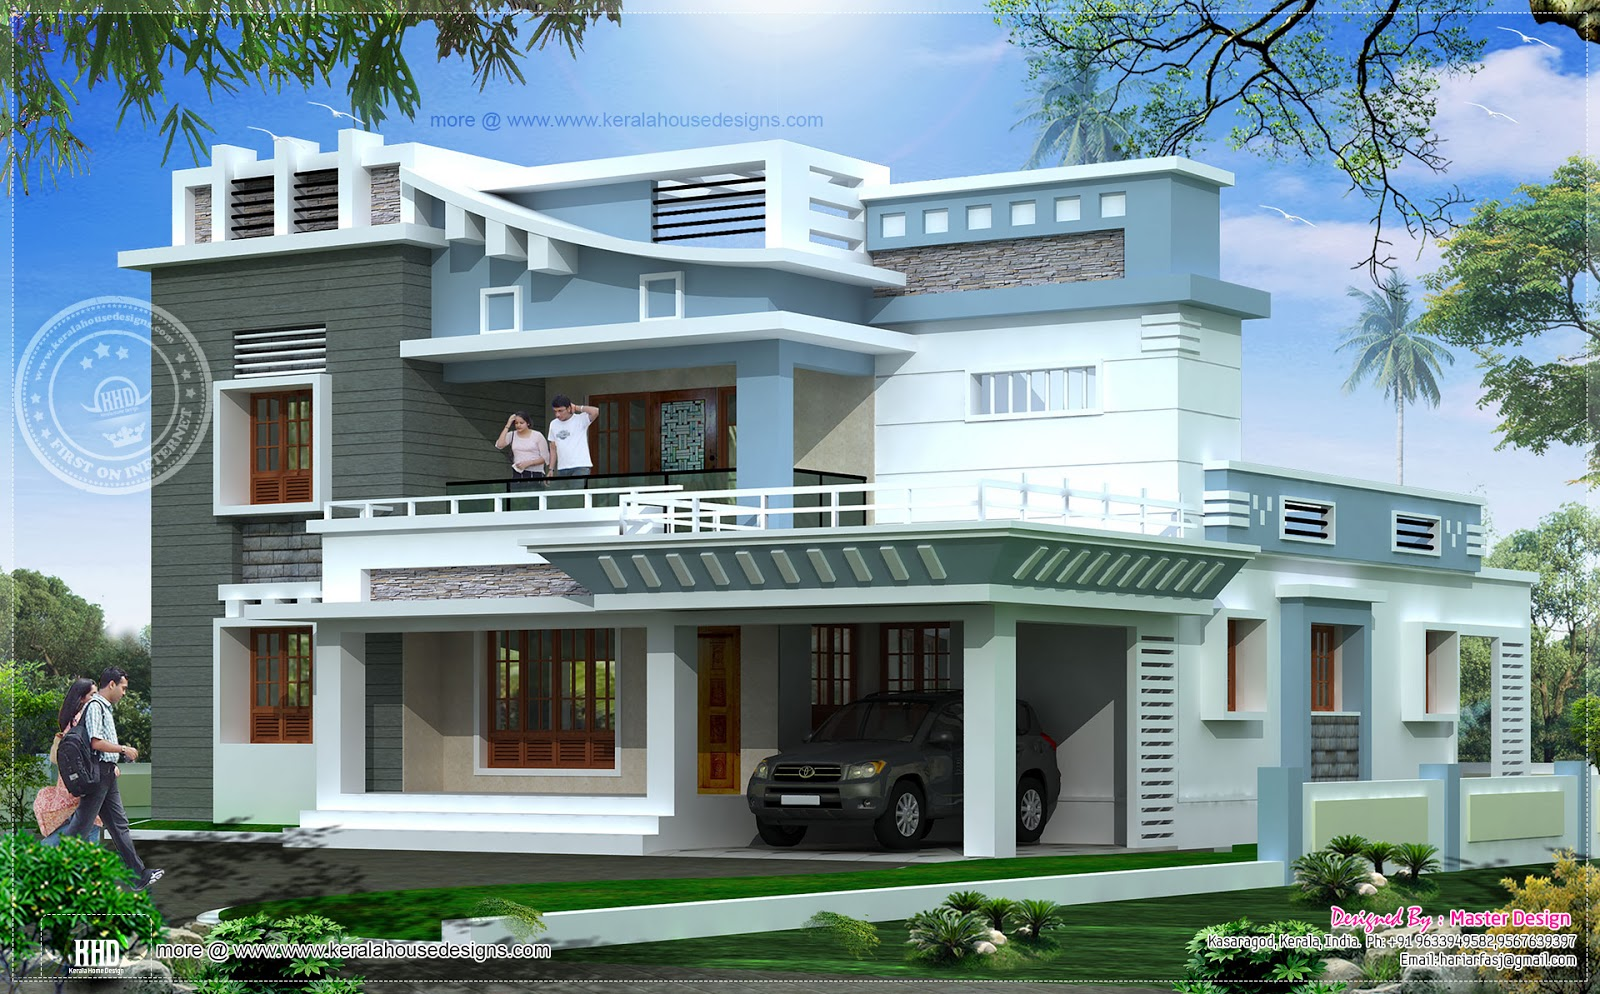 2547 square feet exterior home elevation house design plans for Home designs exterior styles